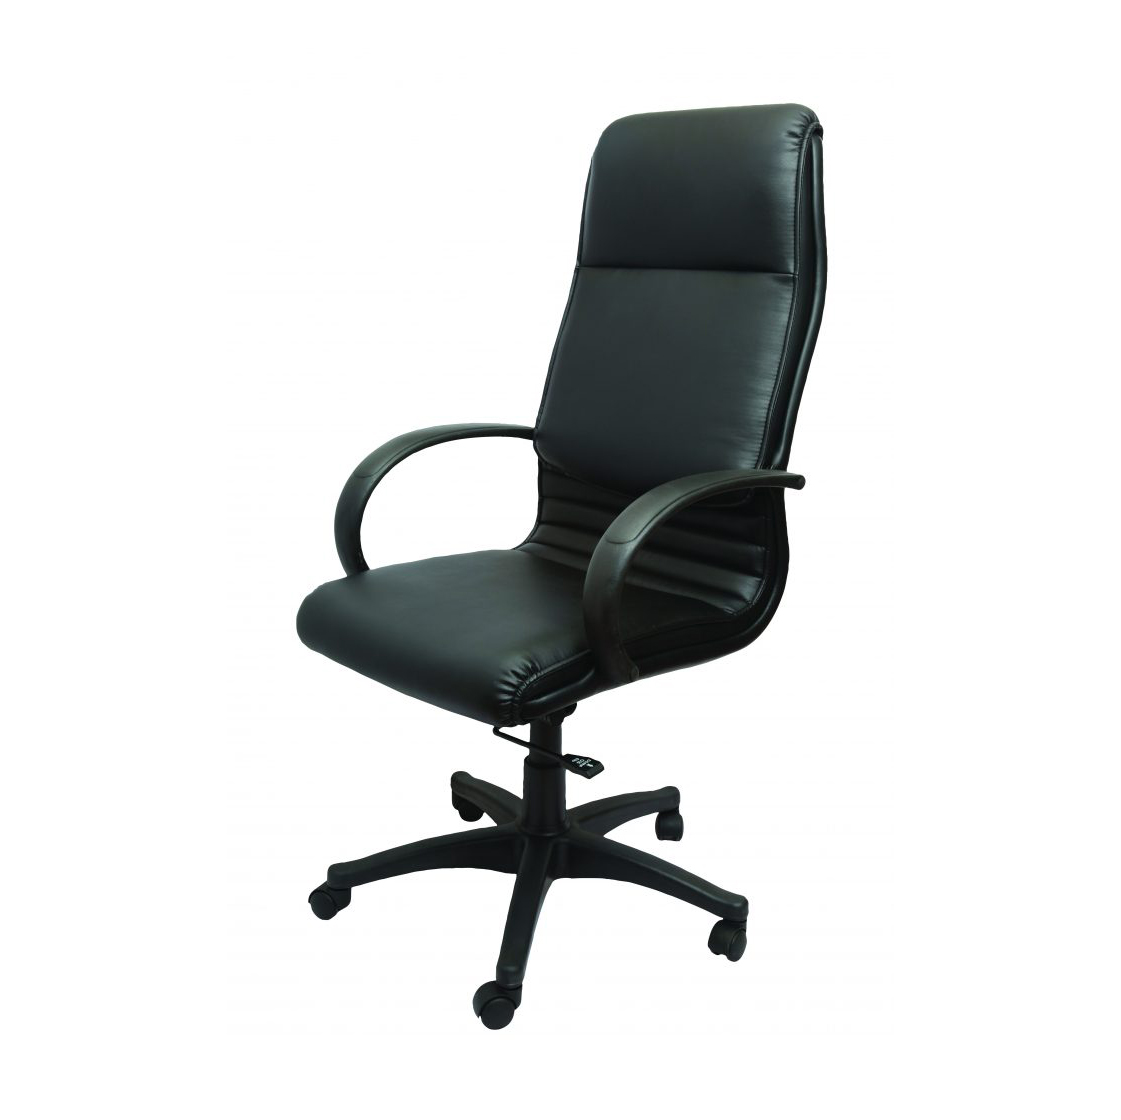 Boardroom Chairs Cl710 Office Chair